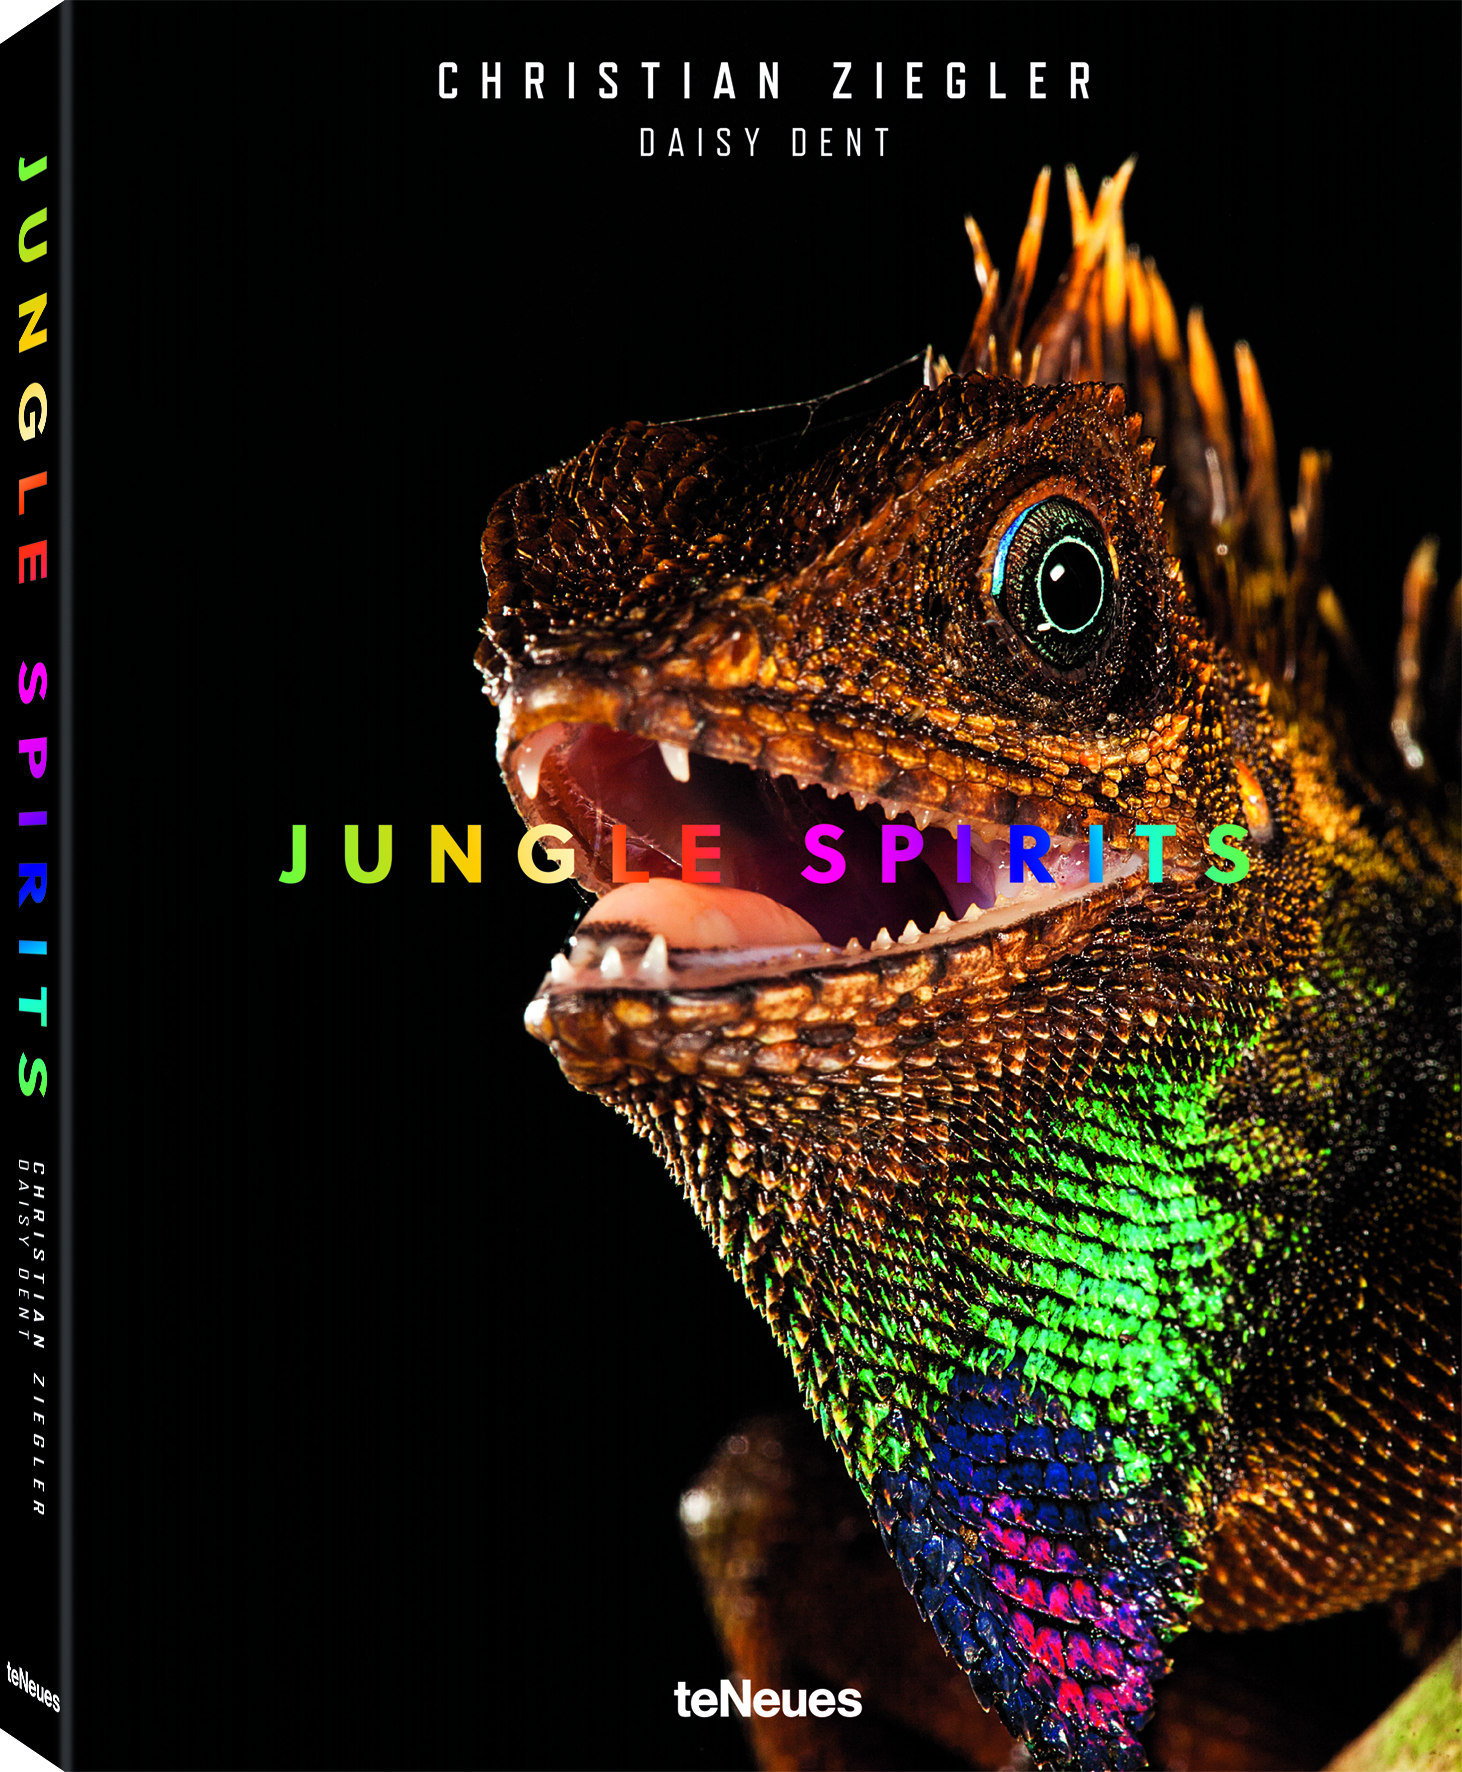 © Jungle Spirits by Christian Ziegler & Daisy Dent, published by teNeues, € 49,90, www.teneues.com , Bell's forest dragon (Gonocephalus bellii), Malaysia , Photo © 2017 Christian Ziegler. All rights reserved. www.christianziegler.photography